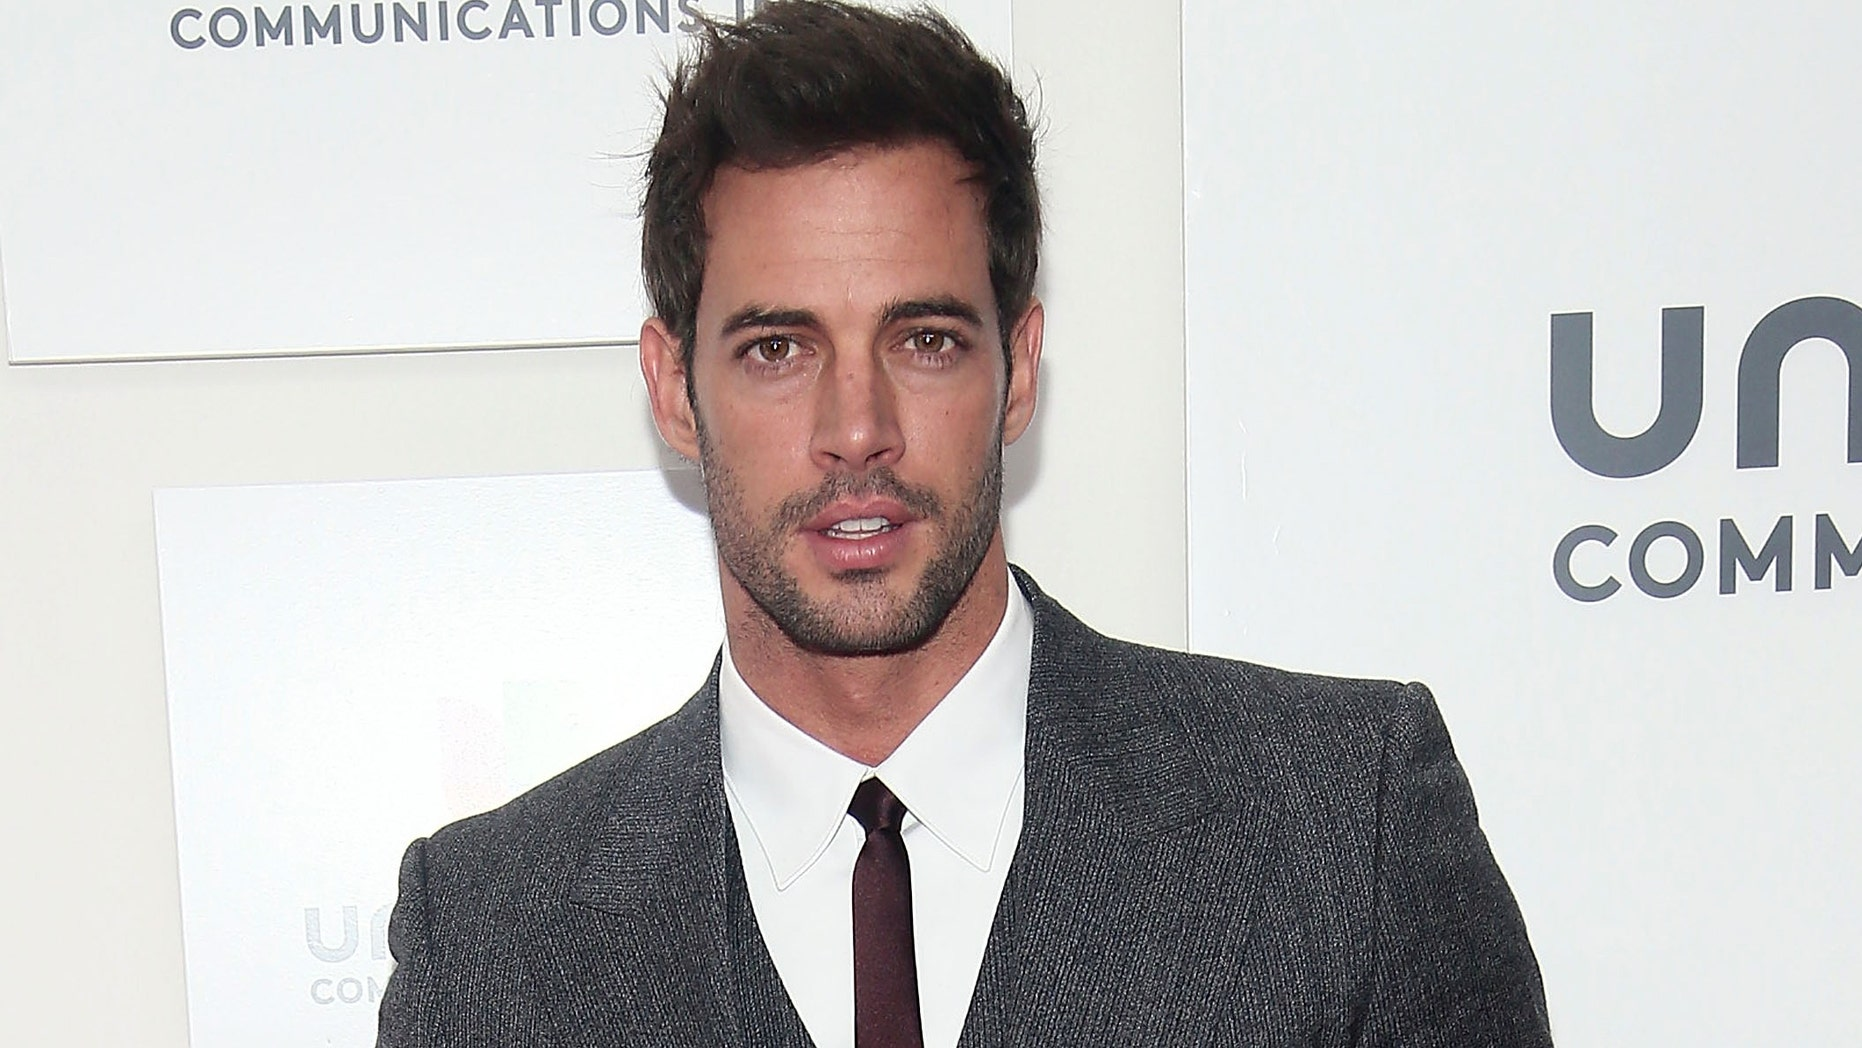 NEW YORK, NY - MAY 14:  William Levy attends the  2013 Univision Upfront Presentation at Espace on May 14, 2013 in New York City.  (Photo by Astrid Stawiarz/Getty Images)